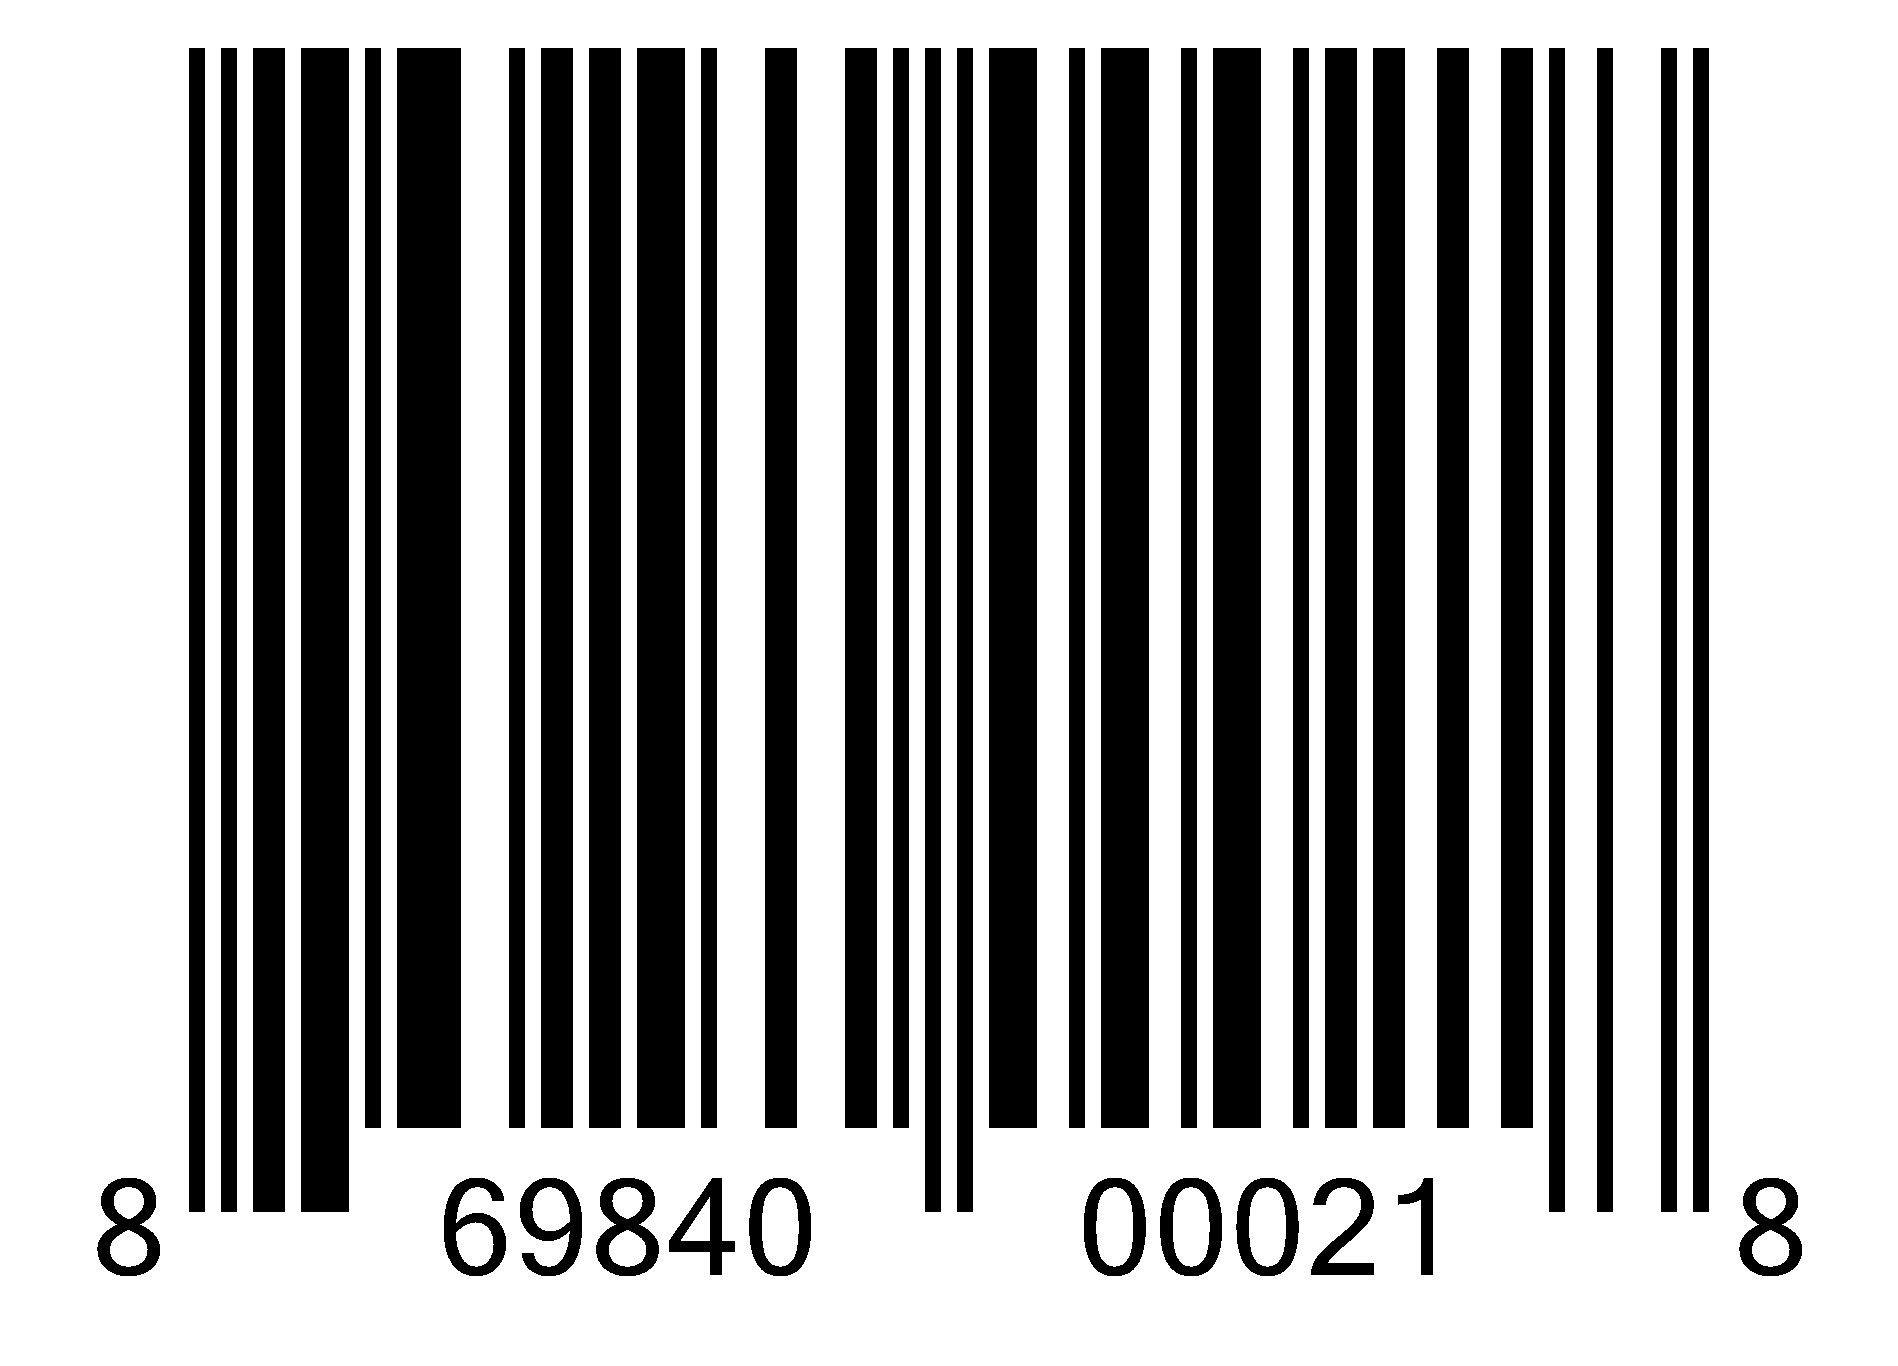 Wired device UPC bar code